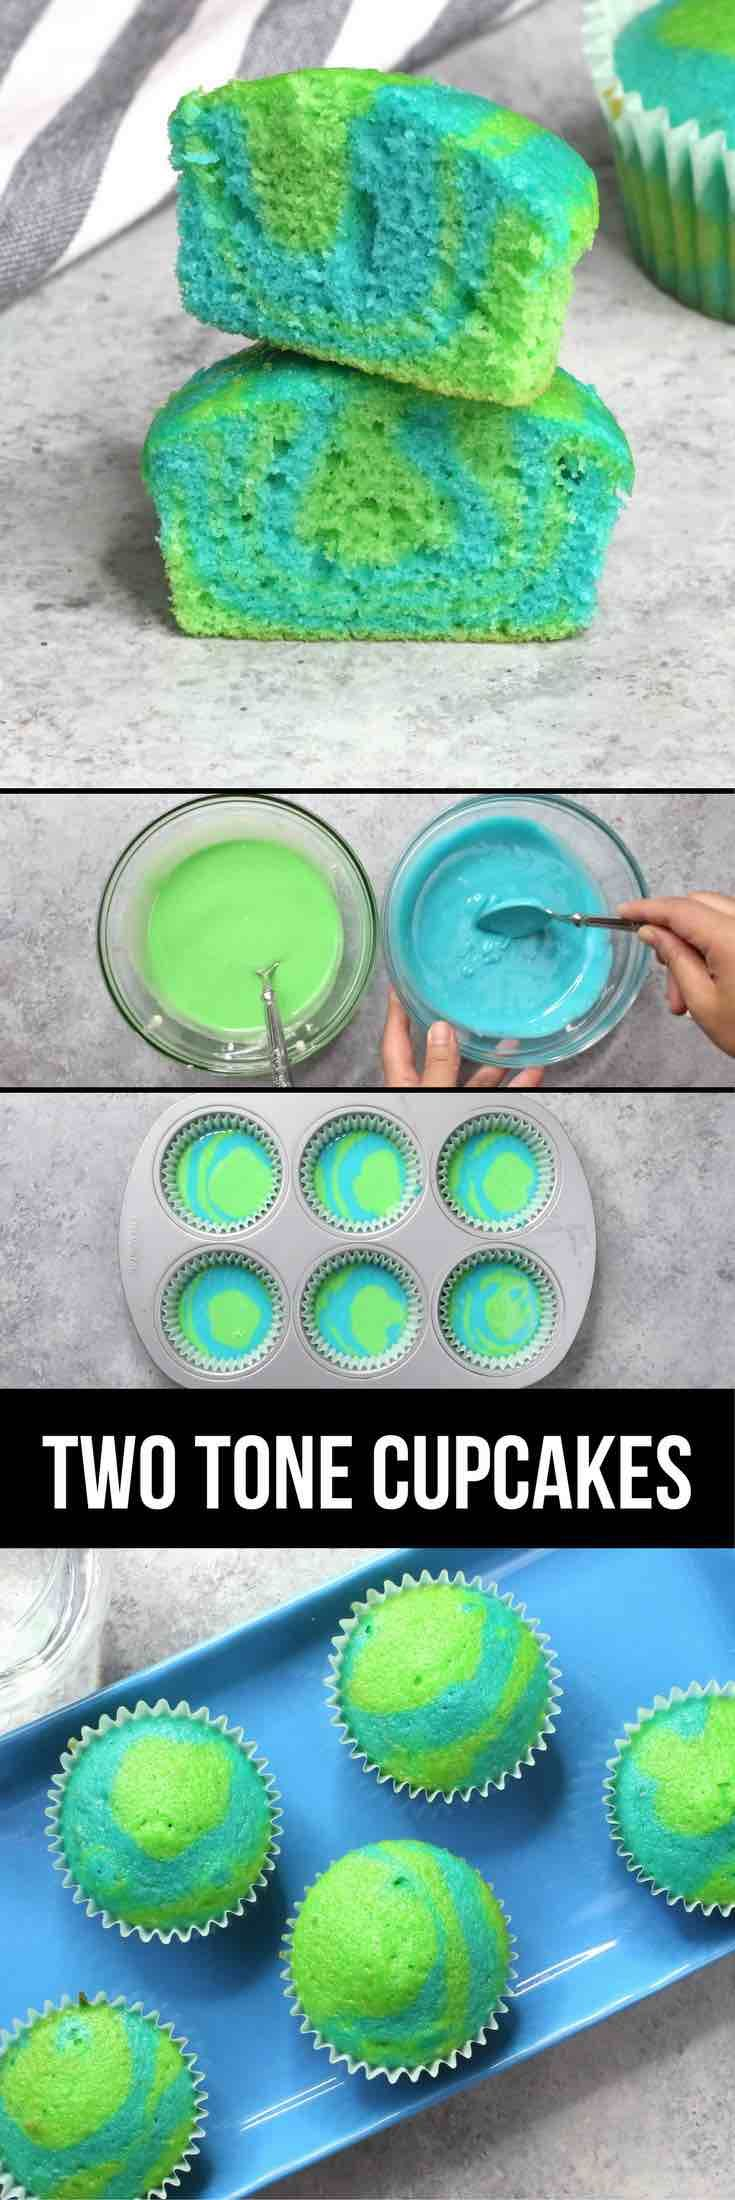 Earth Day Cupcakes – An easy and fun recipe to help celebrate Earth Day! These green and blue earth day cupcakes taste amazing and super cute! Great for a weekend party! All you need is a few simple ingredients: cake mix, egg, oil, green and blue food coloring. So beautiful! Quick and easy, holiday recipe, party food. Video recipe. | Tipbuzz.com